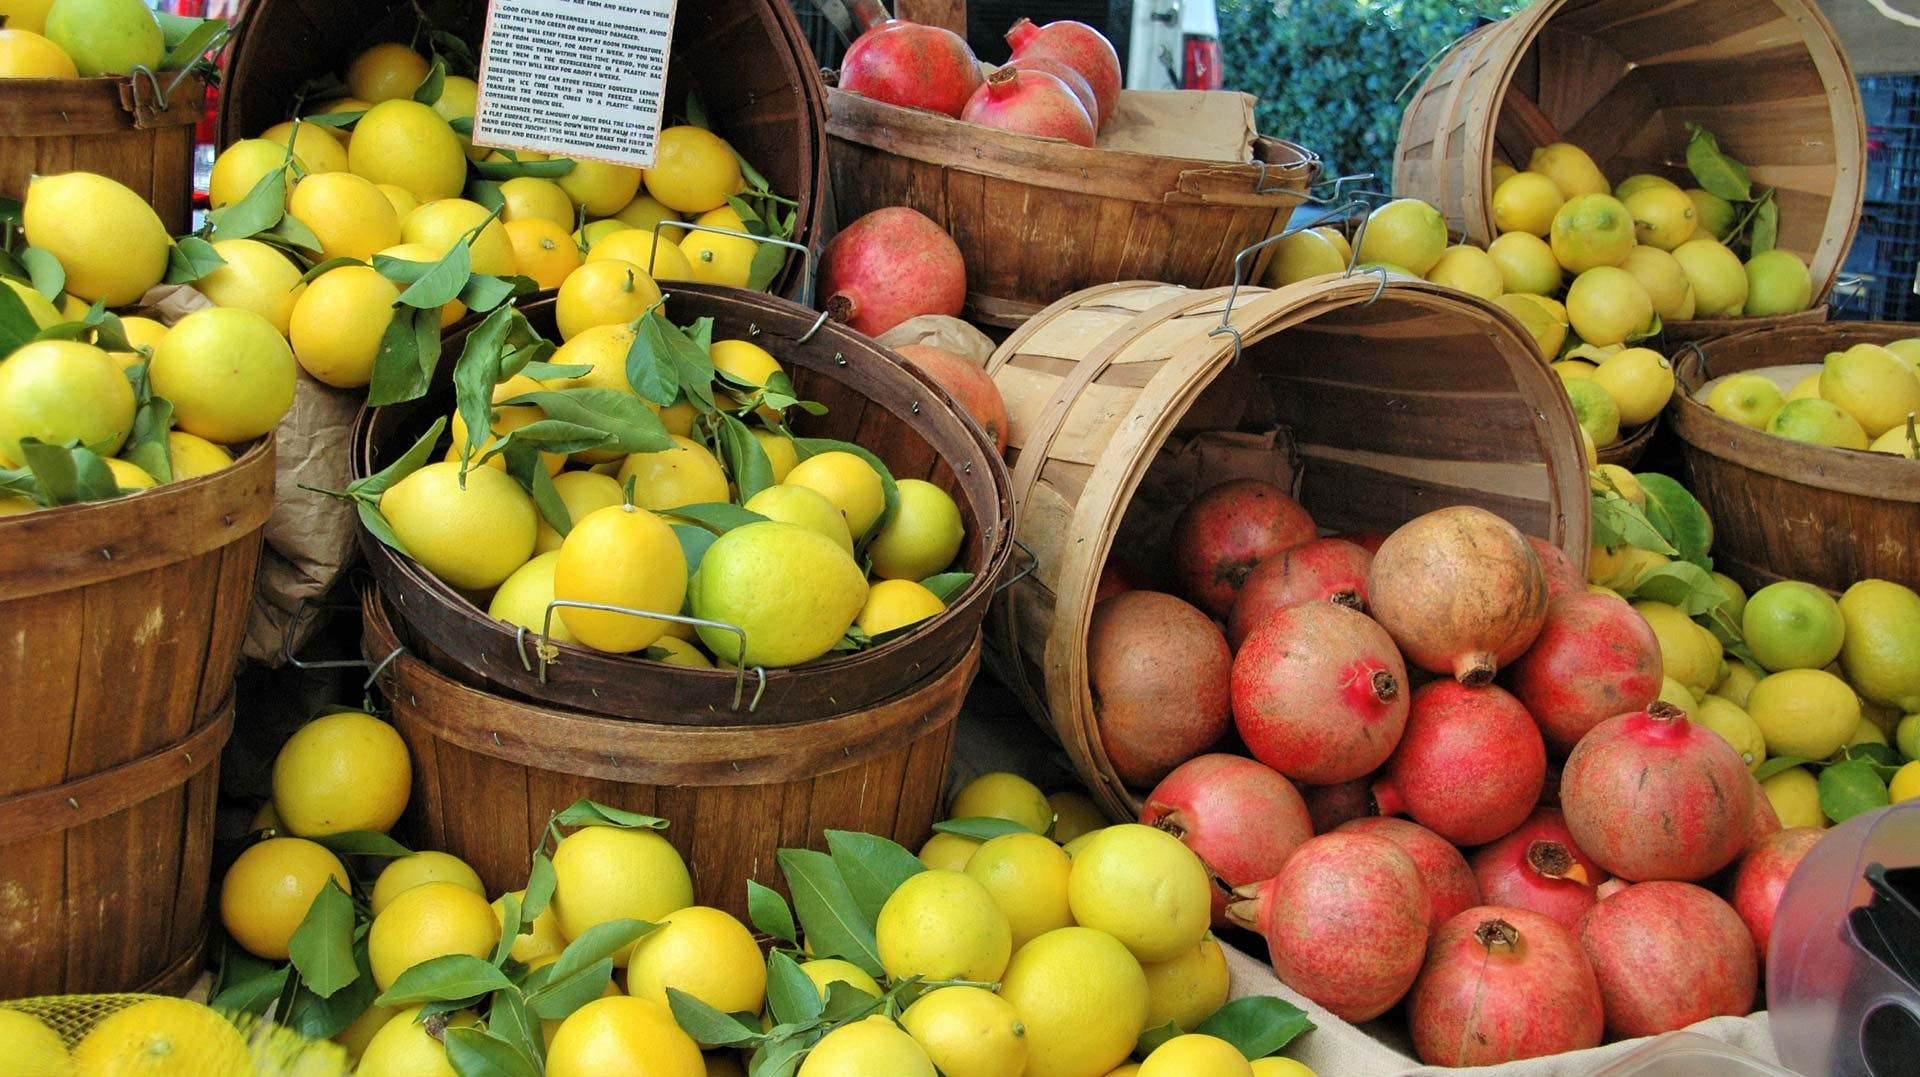 Lemons and pomegranates from Studio City Farmers Market